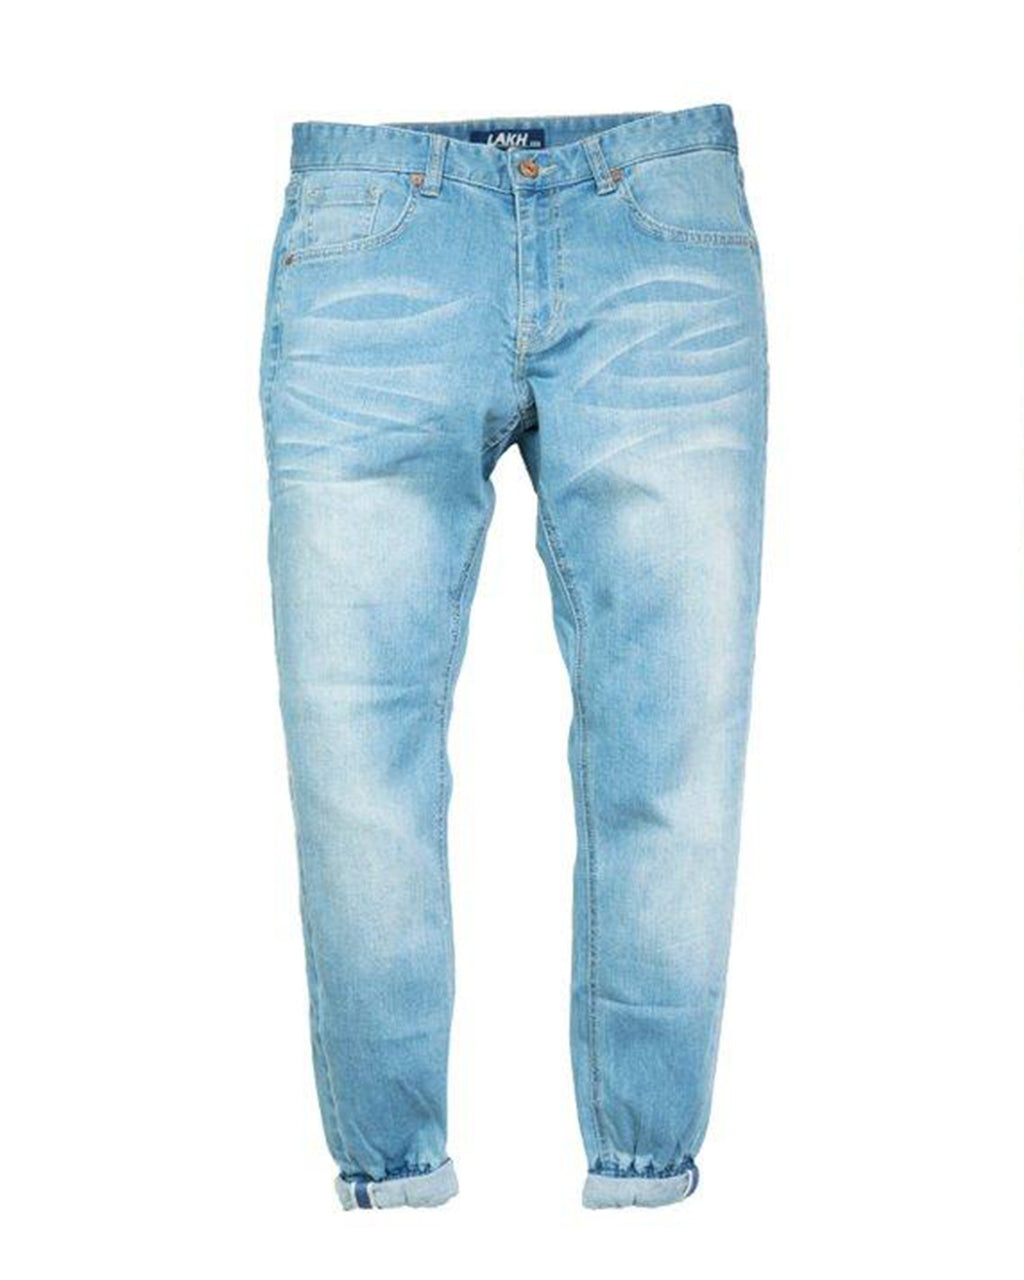 Pinroll Jogger Jeans - Classic Light Blue